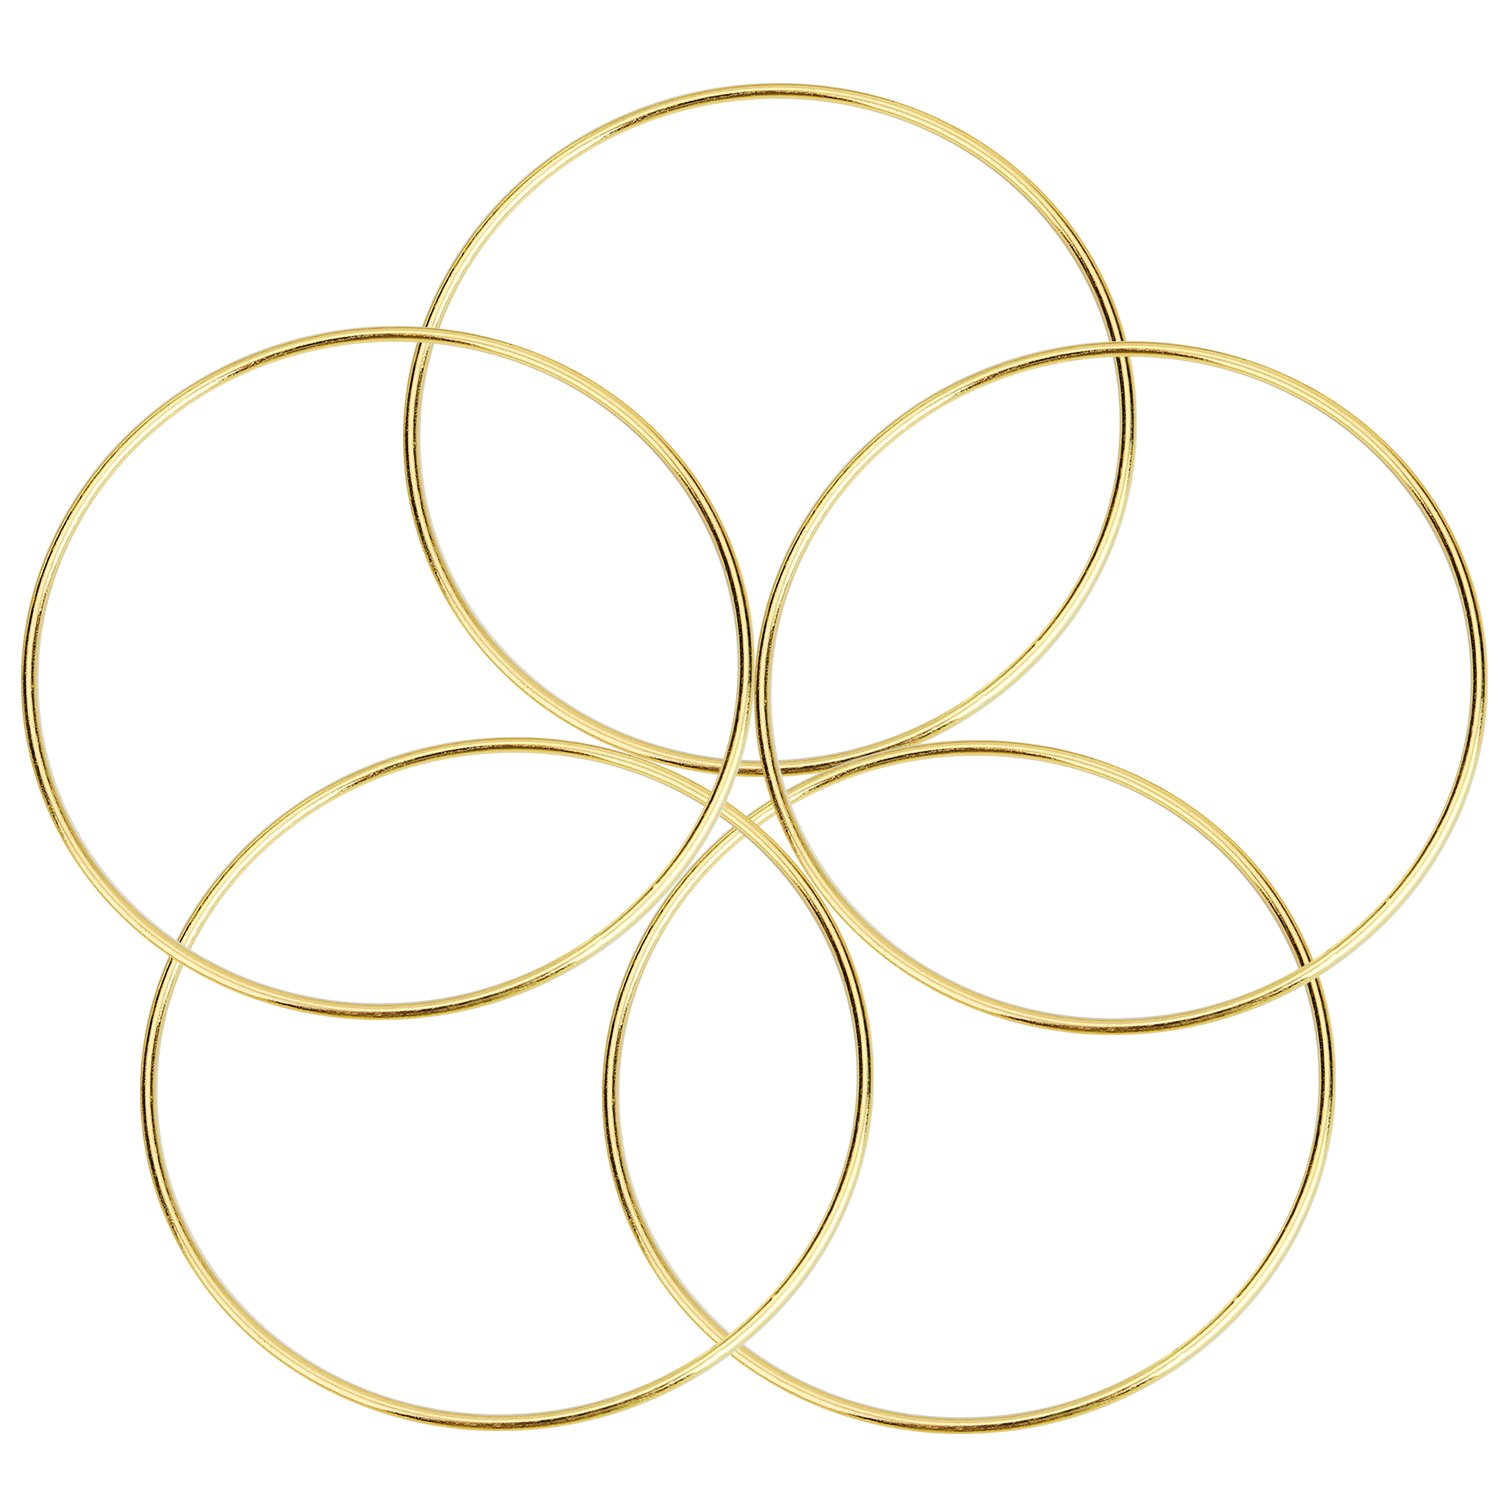 eBoot 5 Pack Gold Metal Rings Hoops Macrame Rings for Dream Catcher and Crafts (5 Inch)